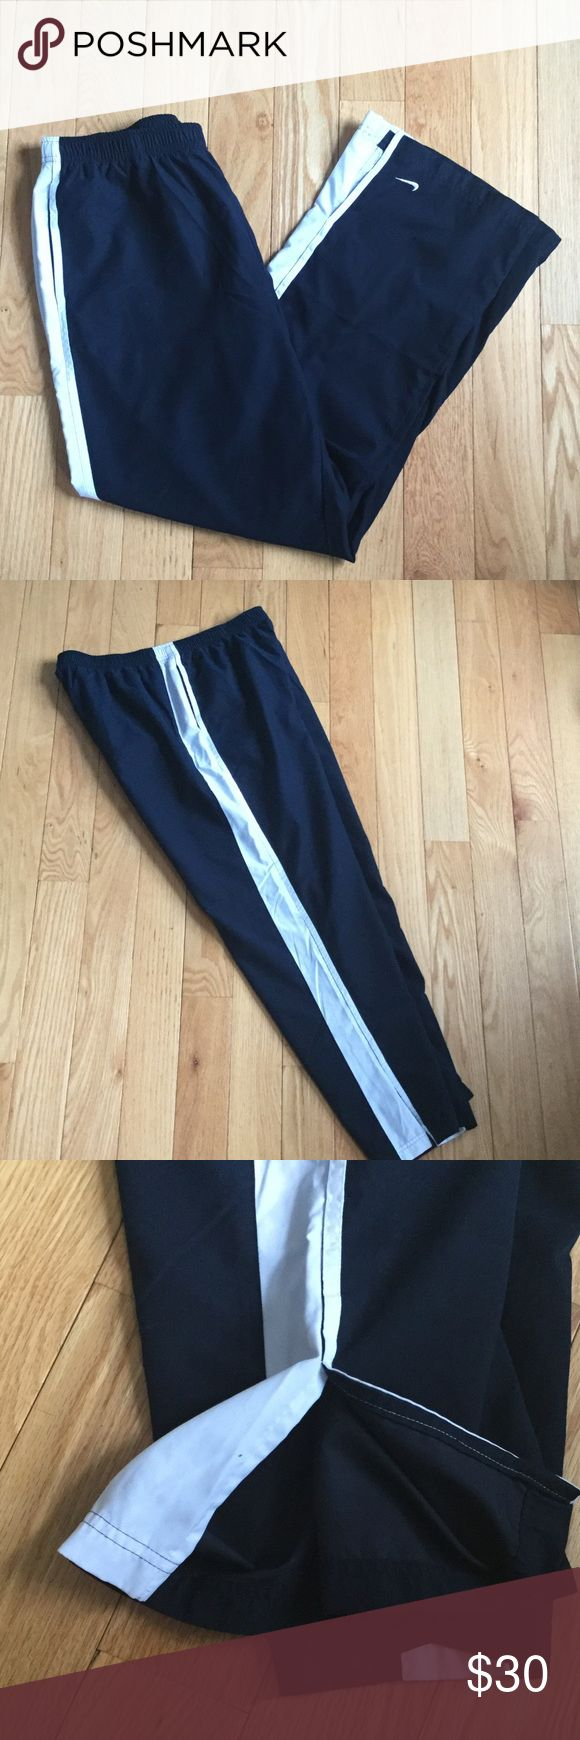 Men's navy and white jogger pants In perfect condition. Nike workout pants. Navy and white, this picture just looks like black. 100% polyester. Nike Pants Track Pants & Joggers